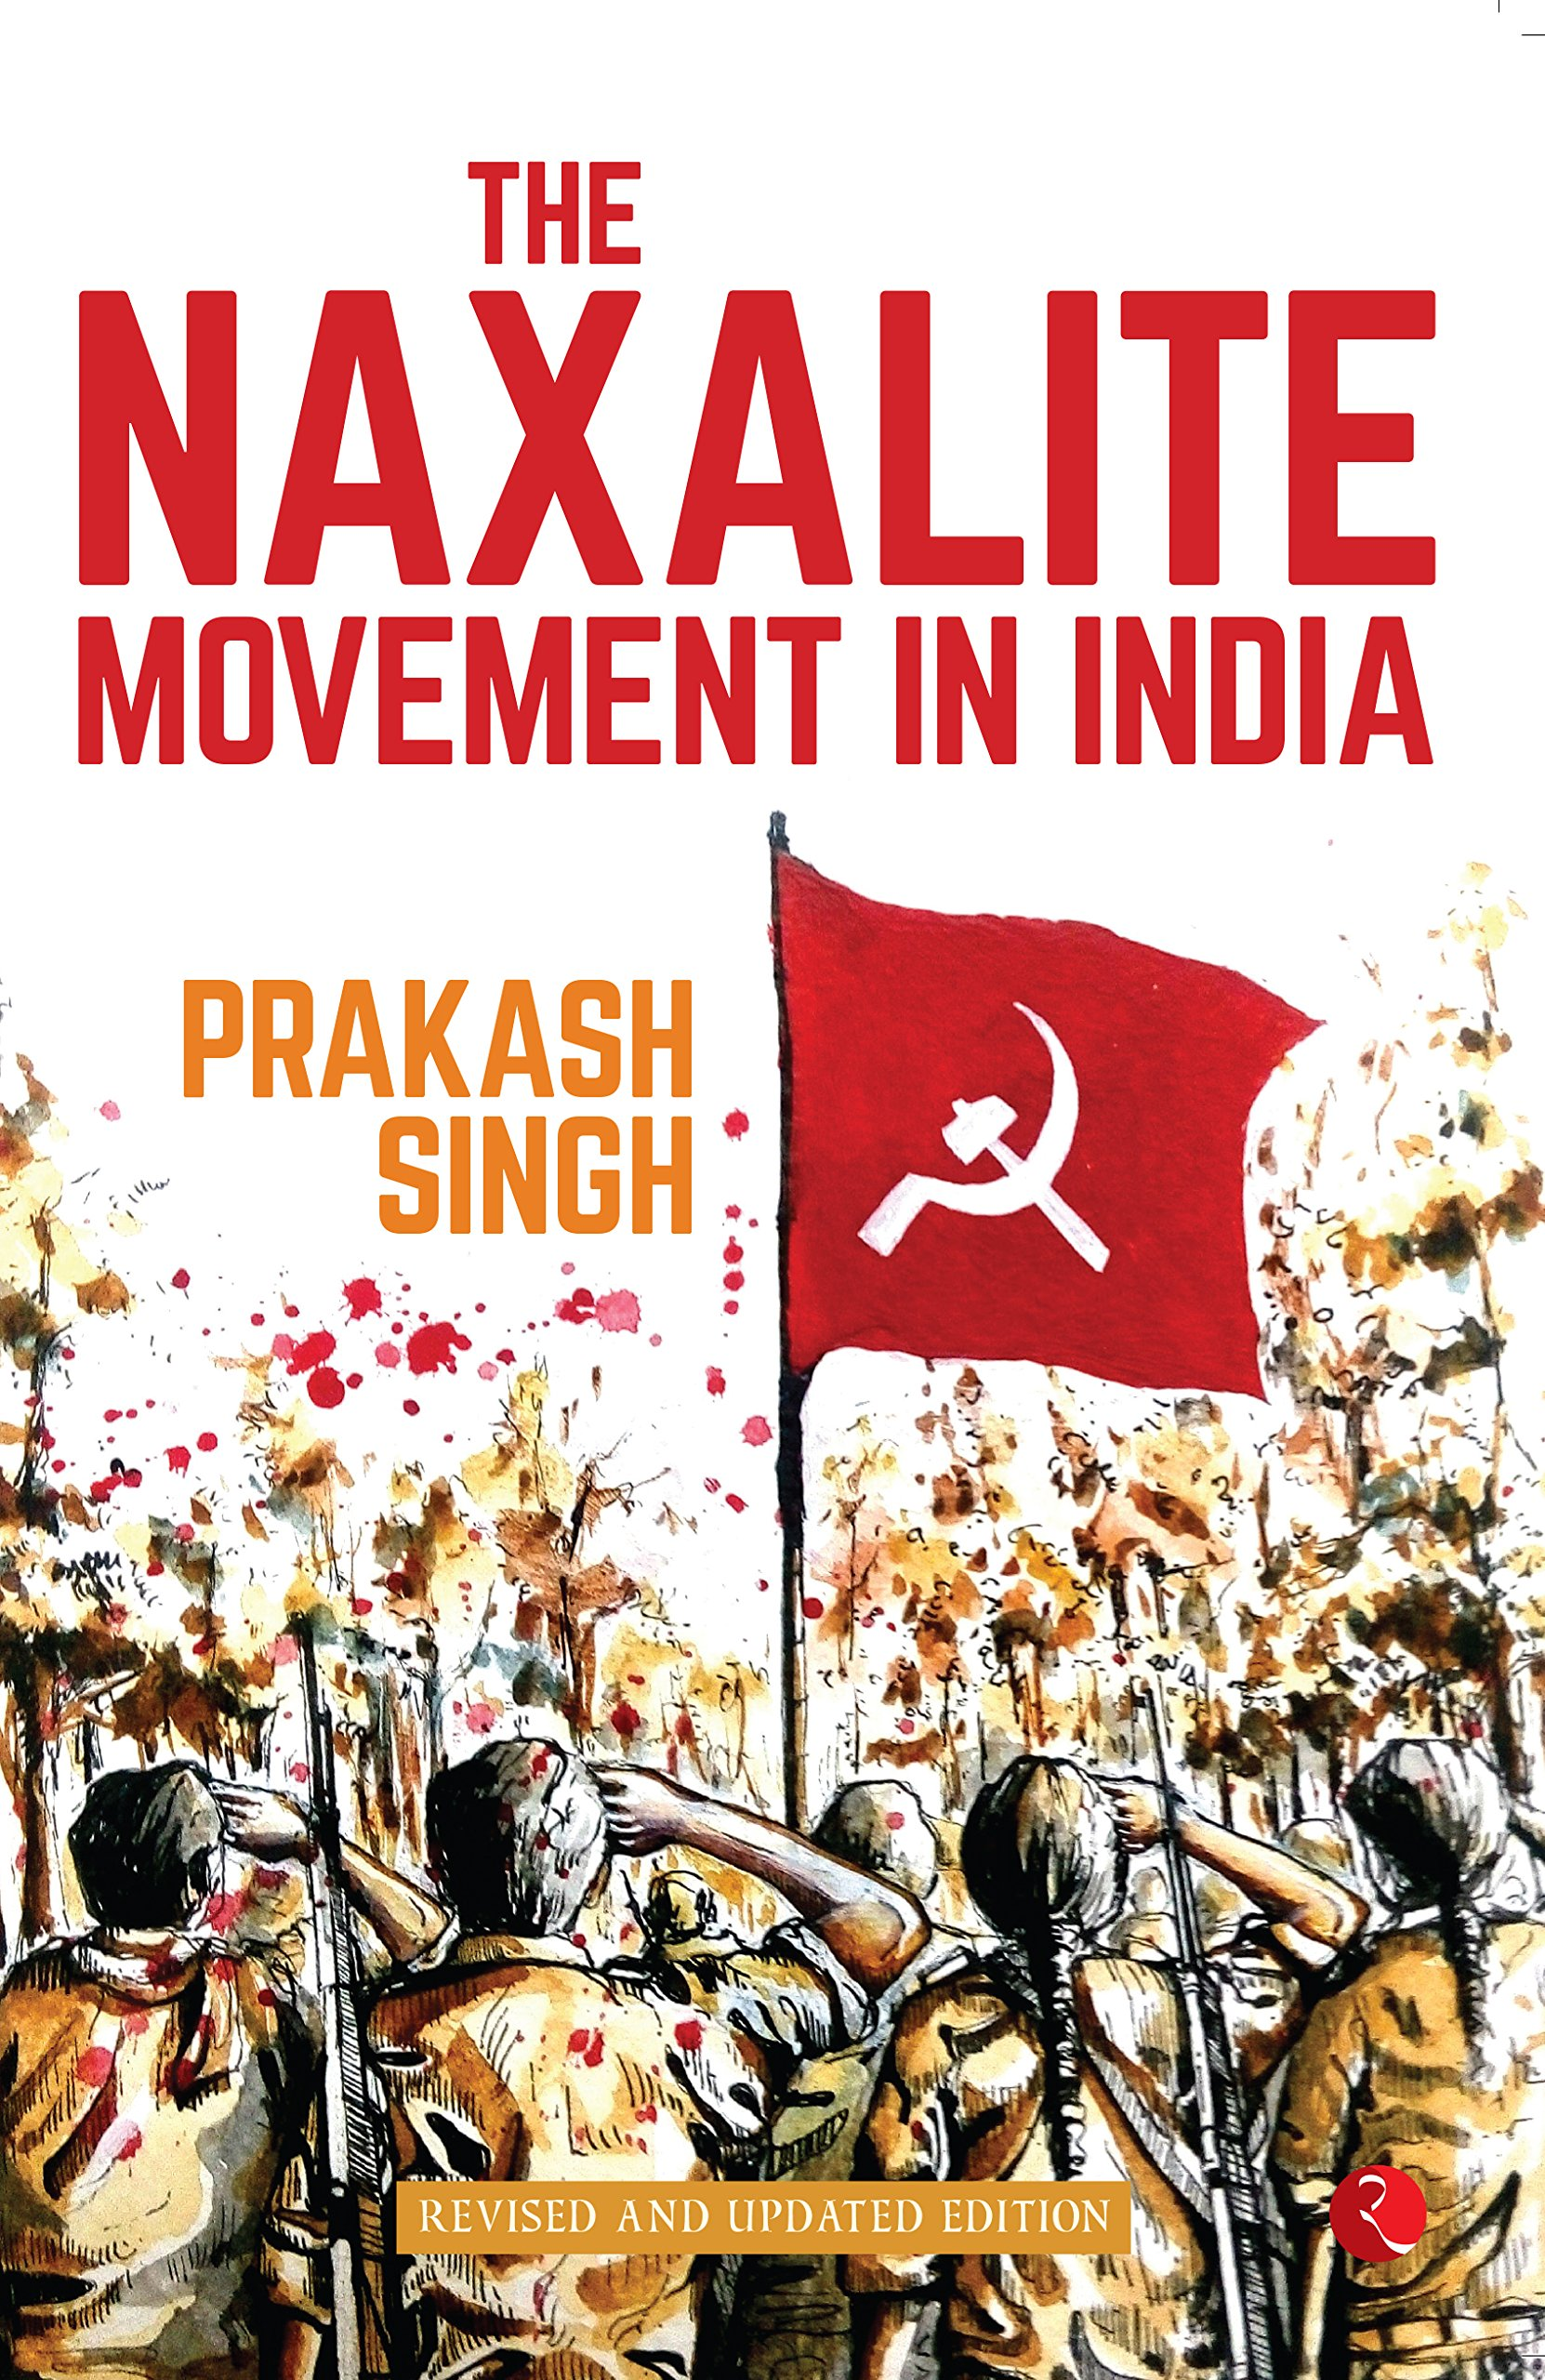 The Naxalite Movement In India Paperback 22 Mar 2016